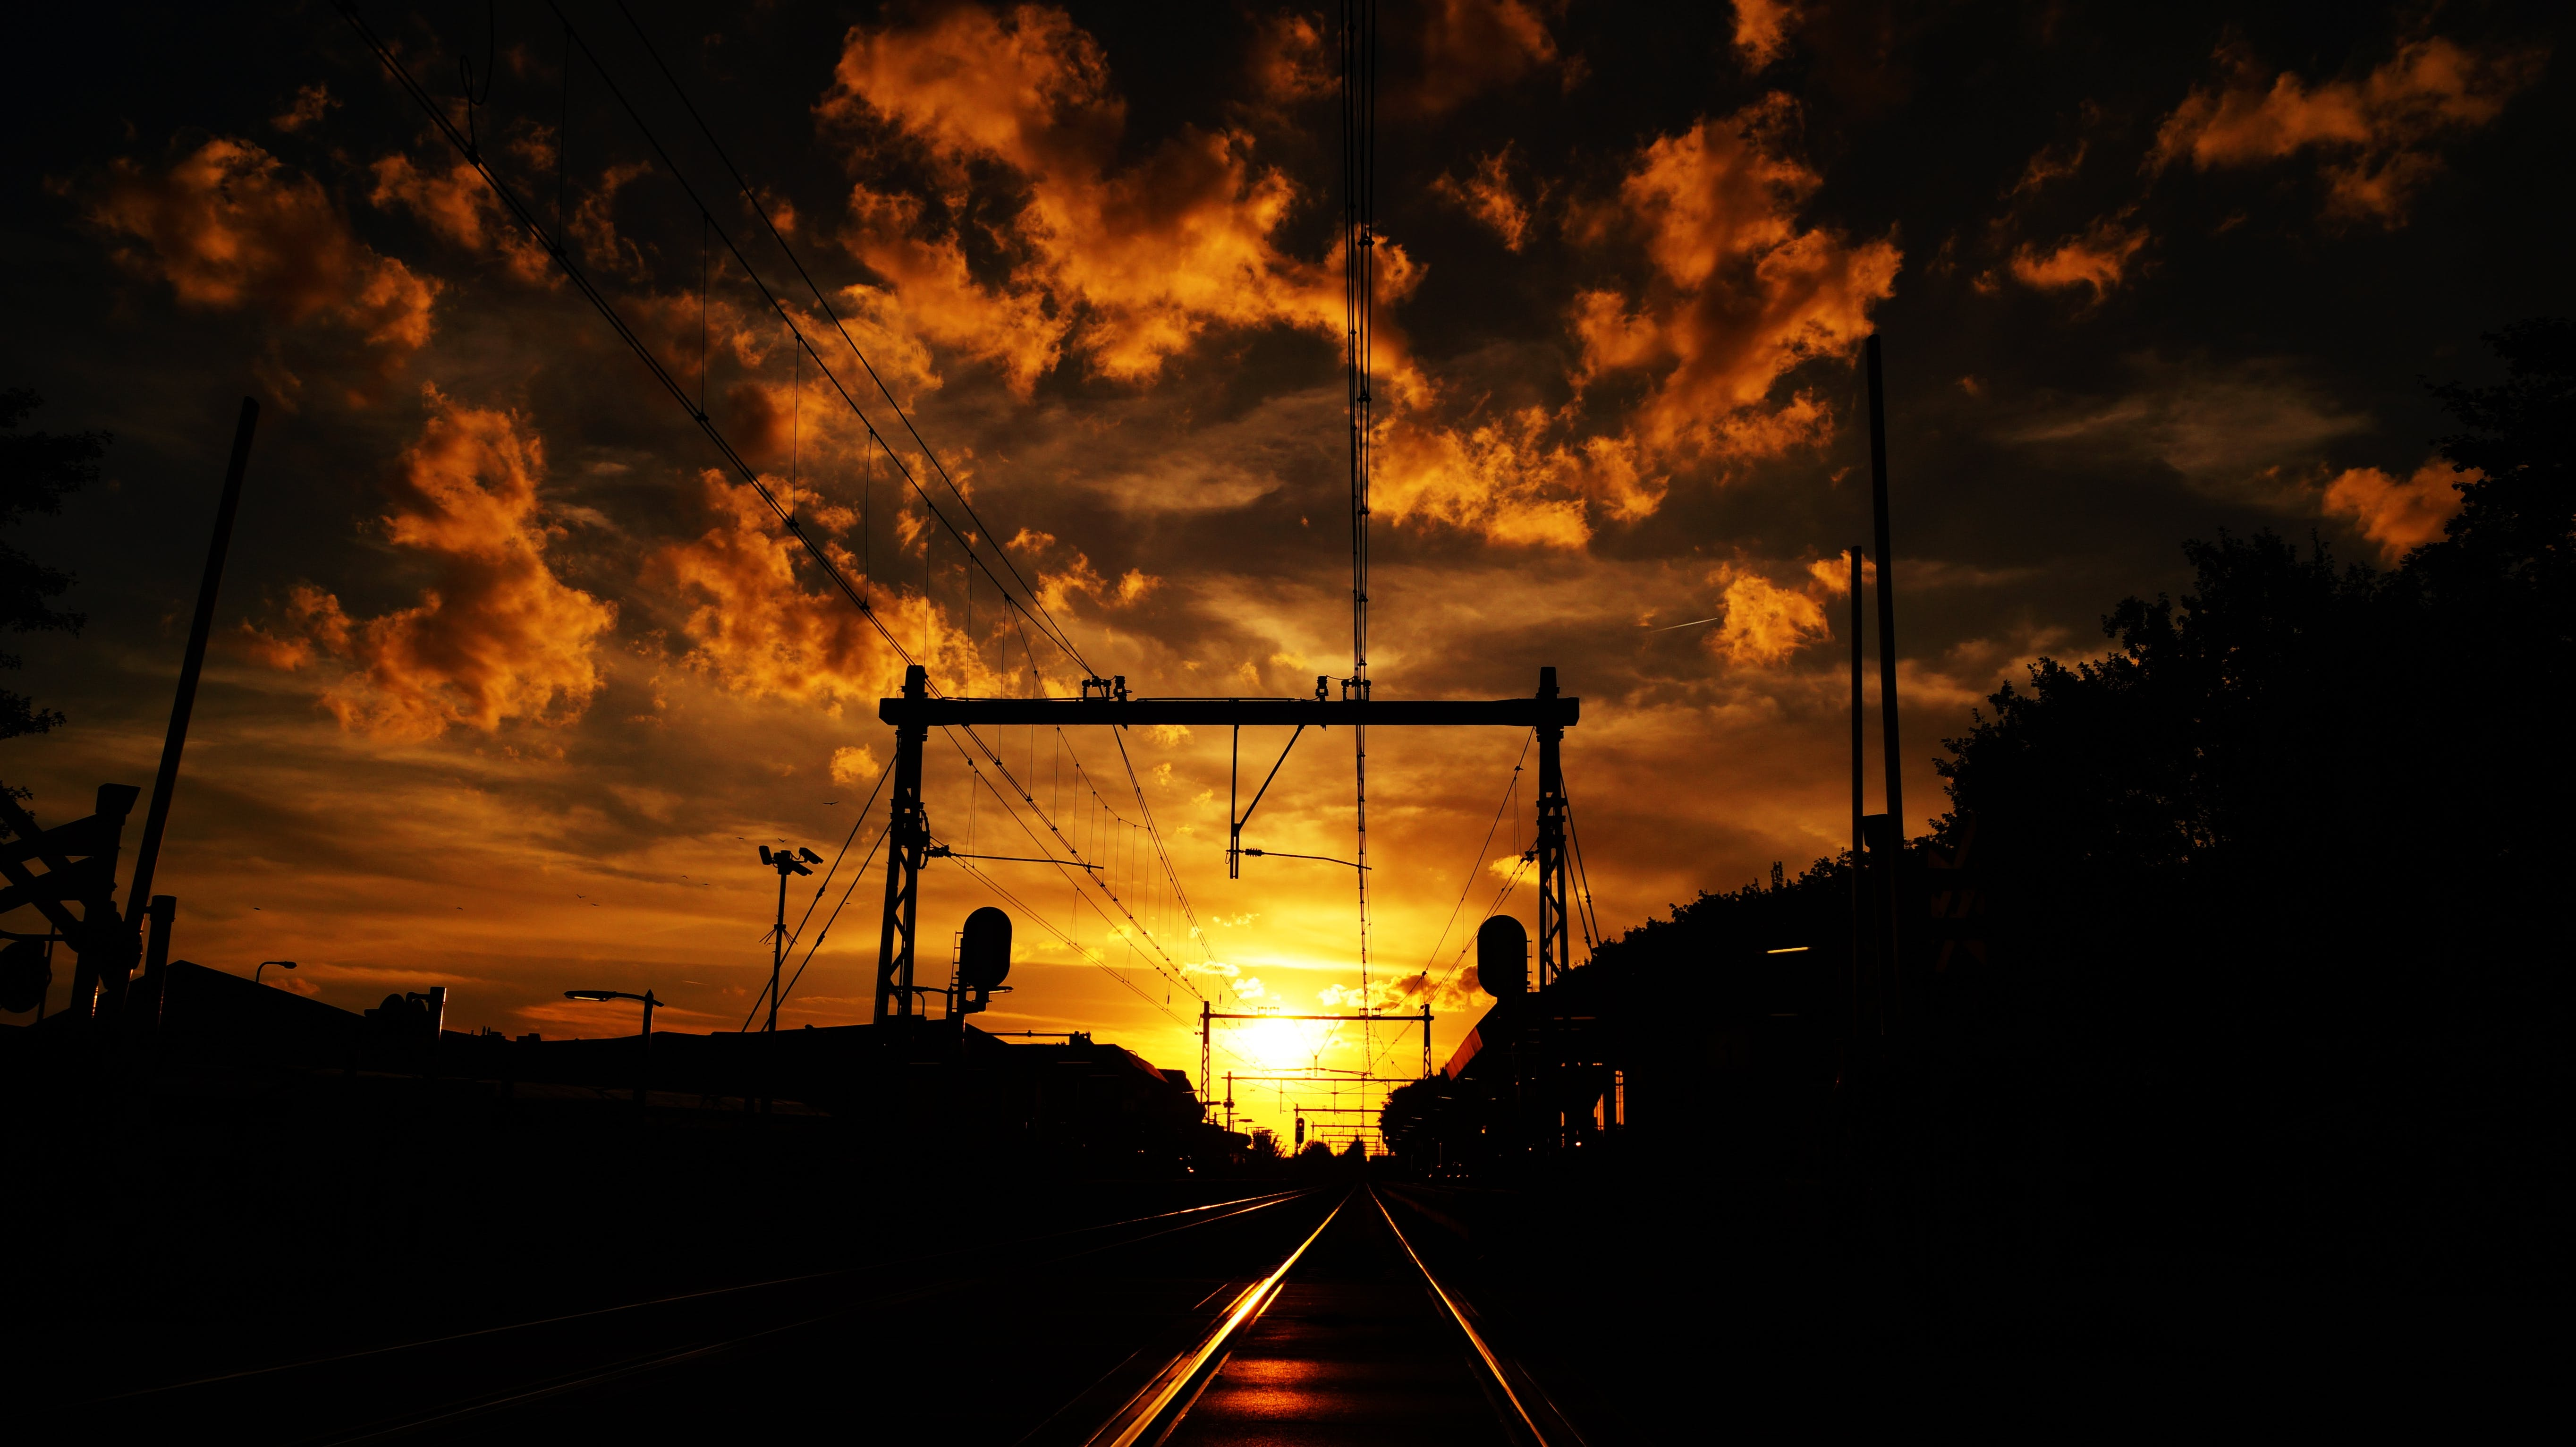 Train Railways Under Orange Skies